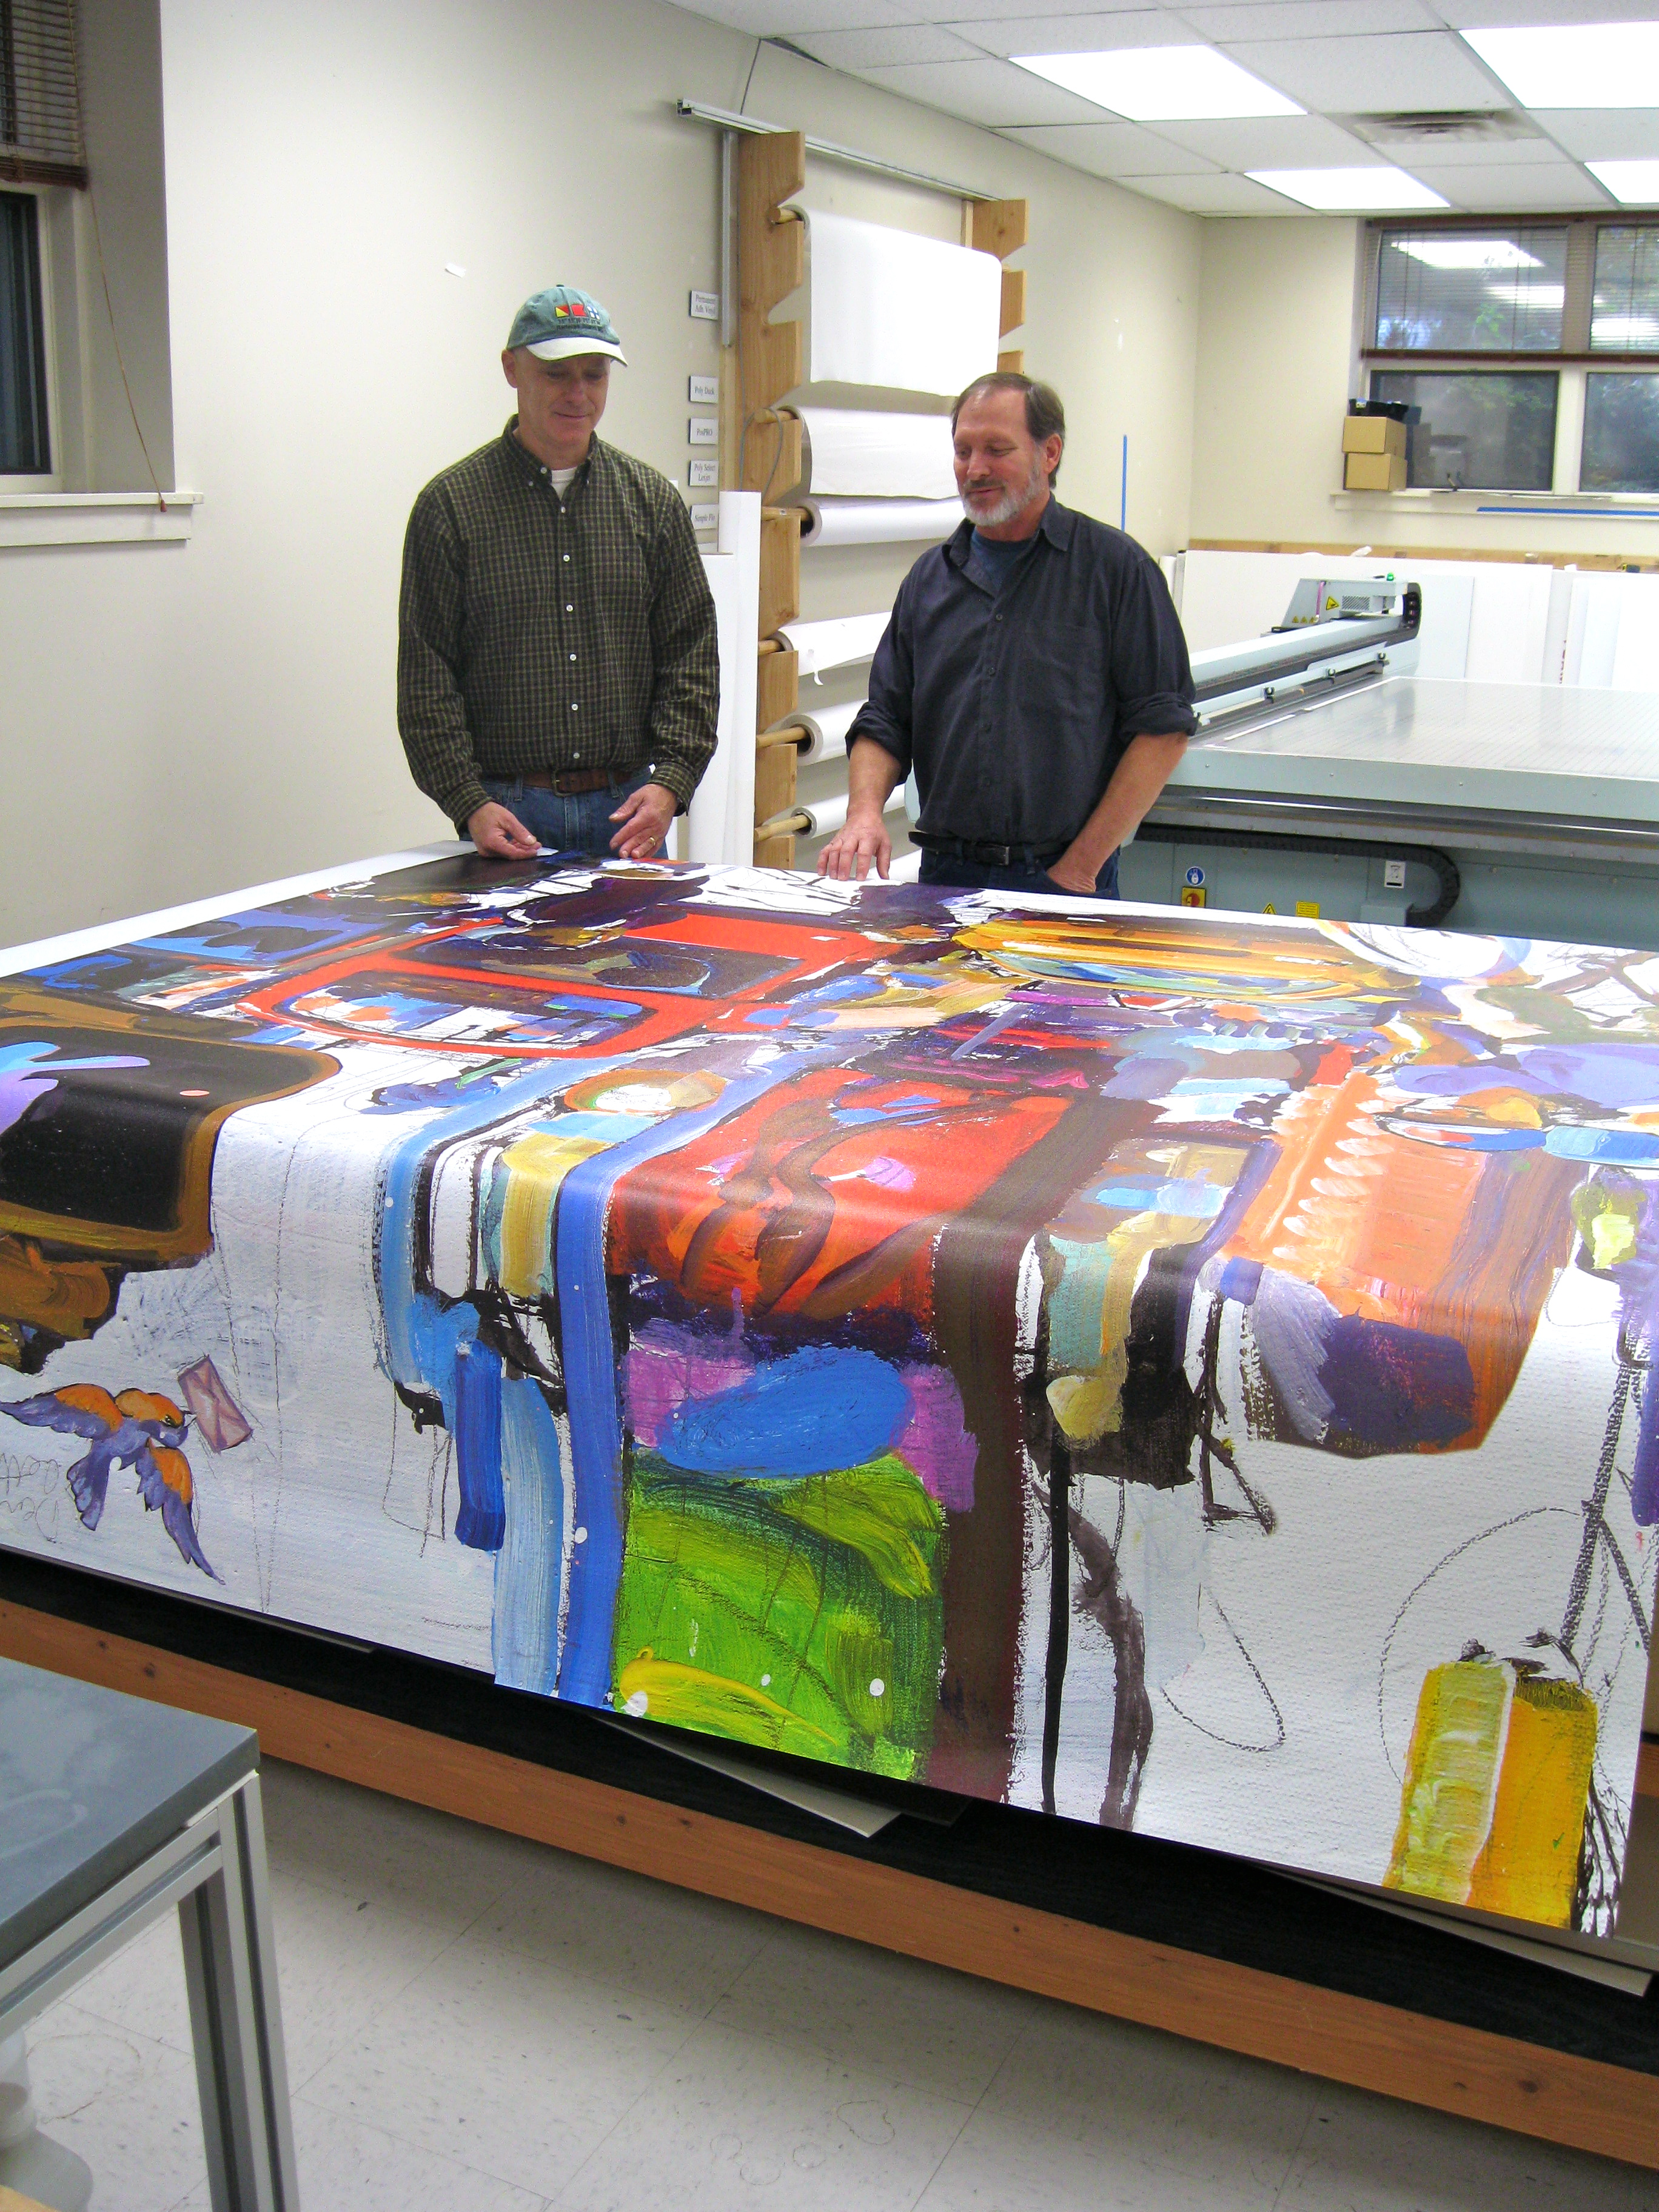 large format printed artwork for wall mounted mural